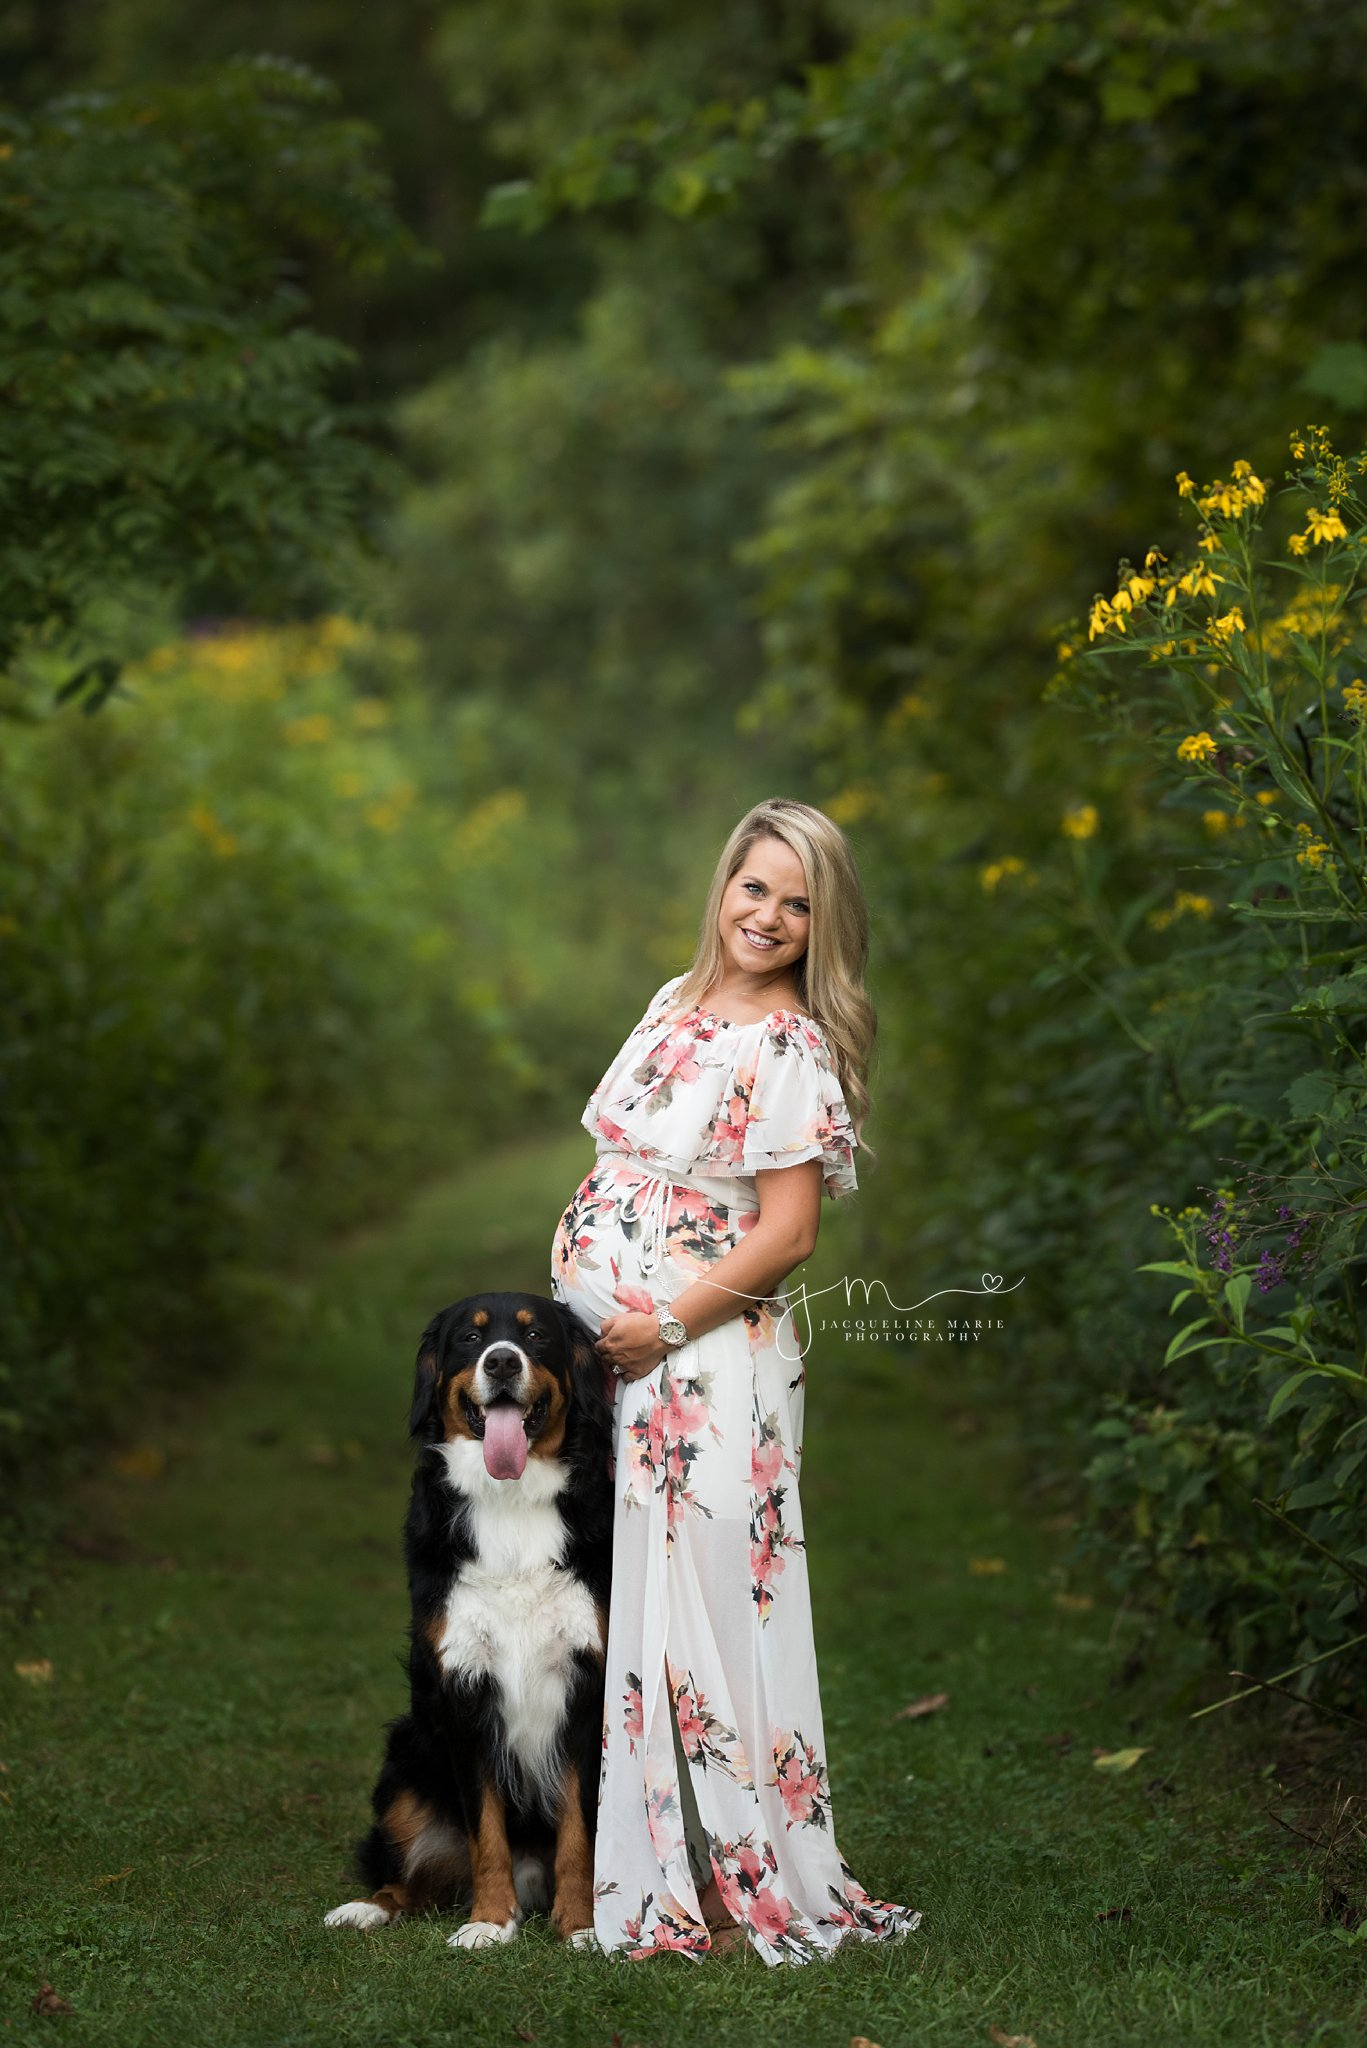 pregnancy maternity image of new mother to be and dog in field of flowers during sunset in columbus ohio